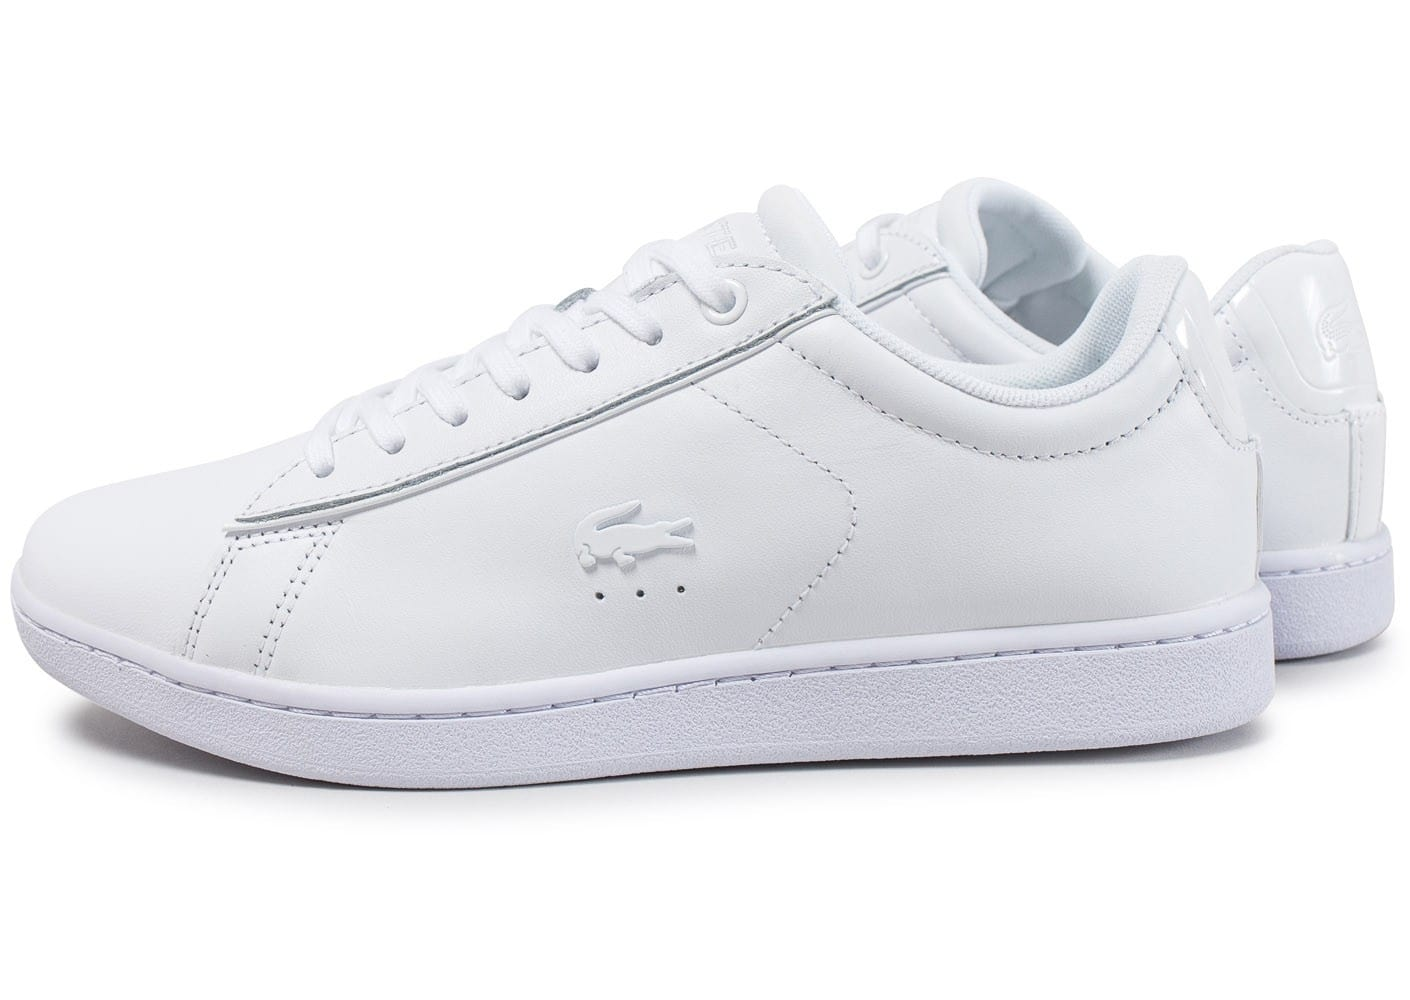 Spw Blanche Femme Lacoste Baskets Evo Carnaby Chaussures 417 YyfmIg7b6v